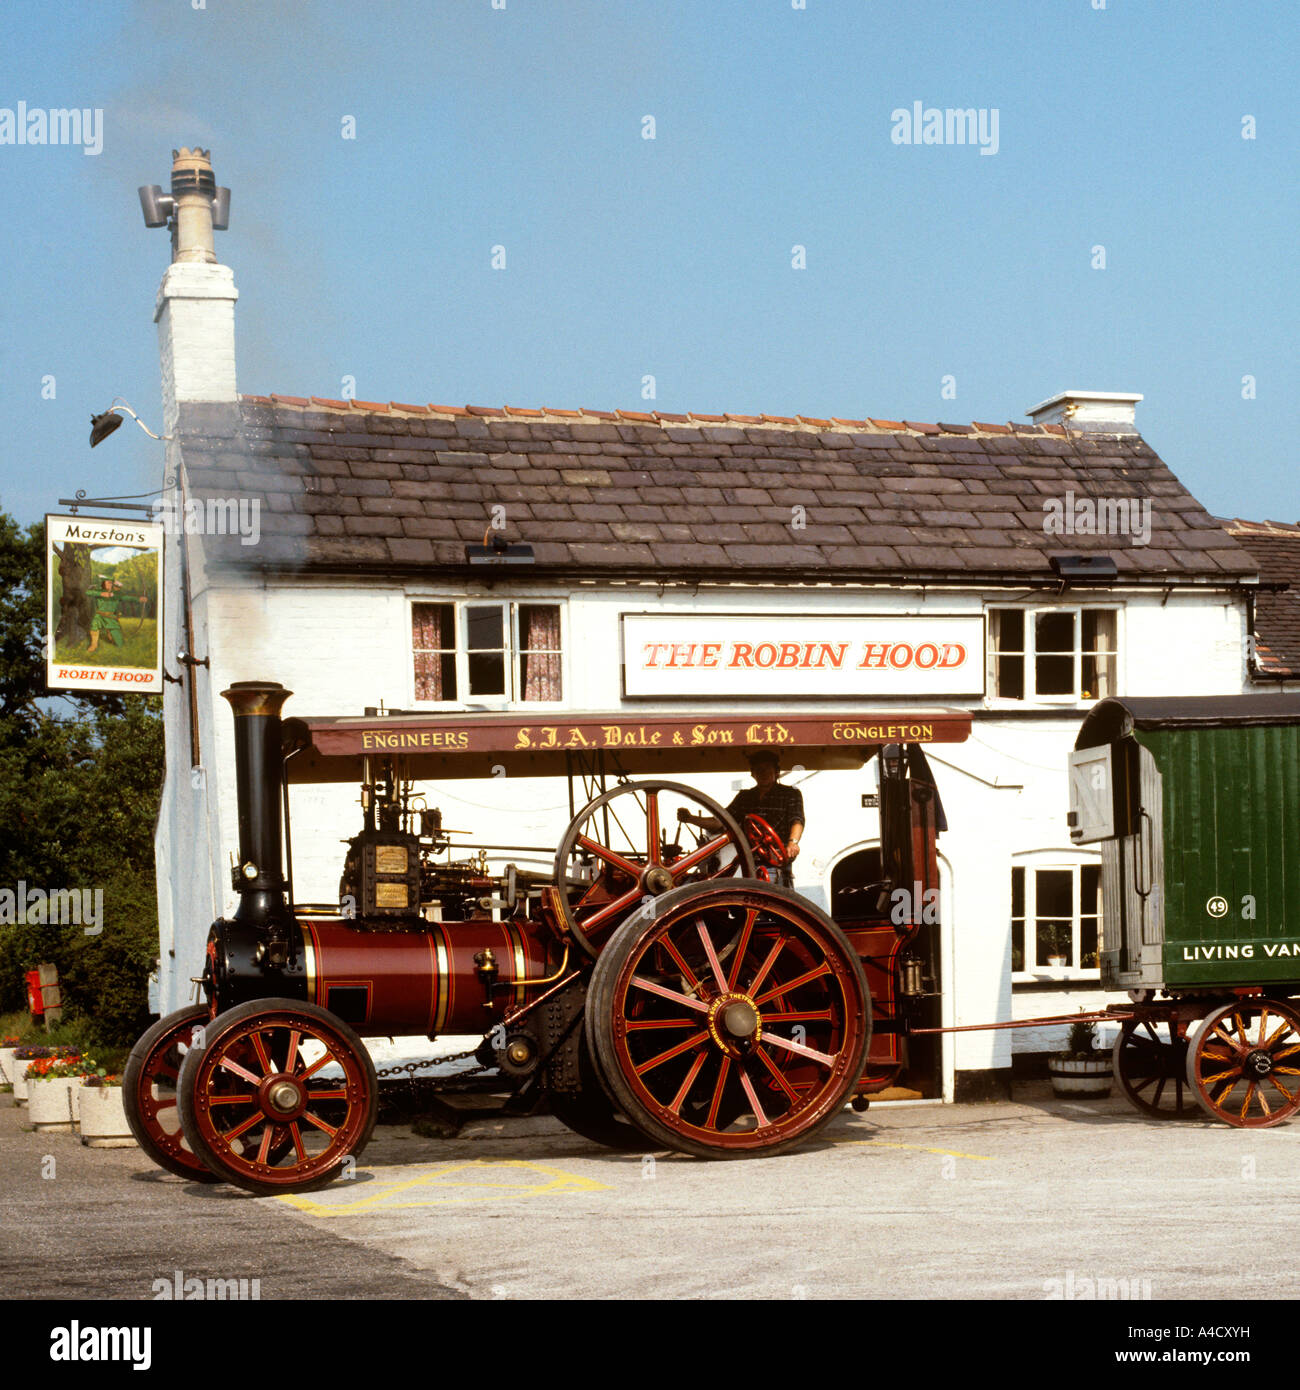 UK Cheshire Congleton Traction Engine outside Robin Hood pub - Stock Image